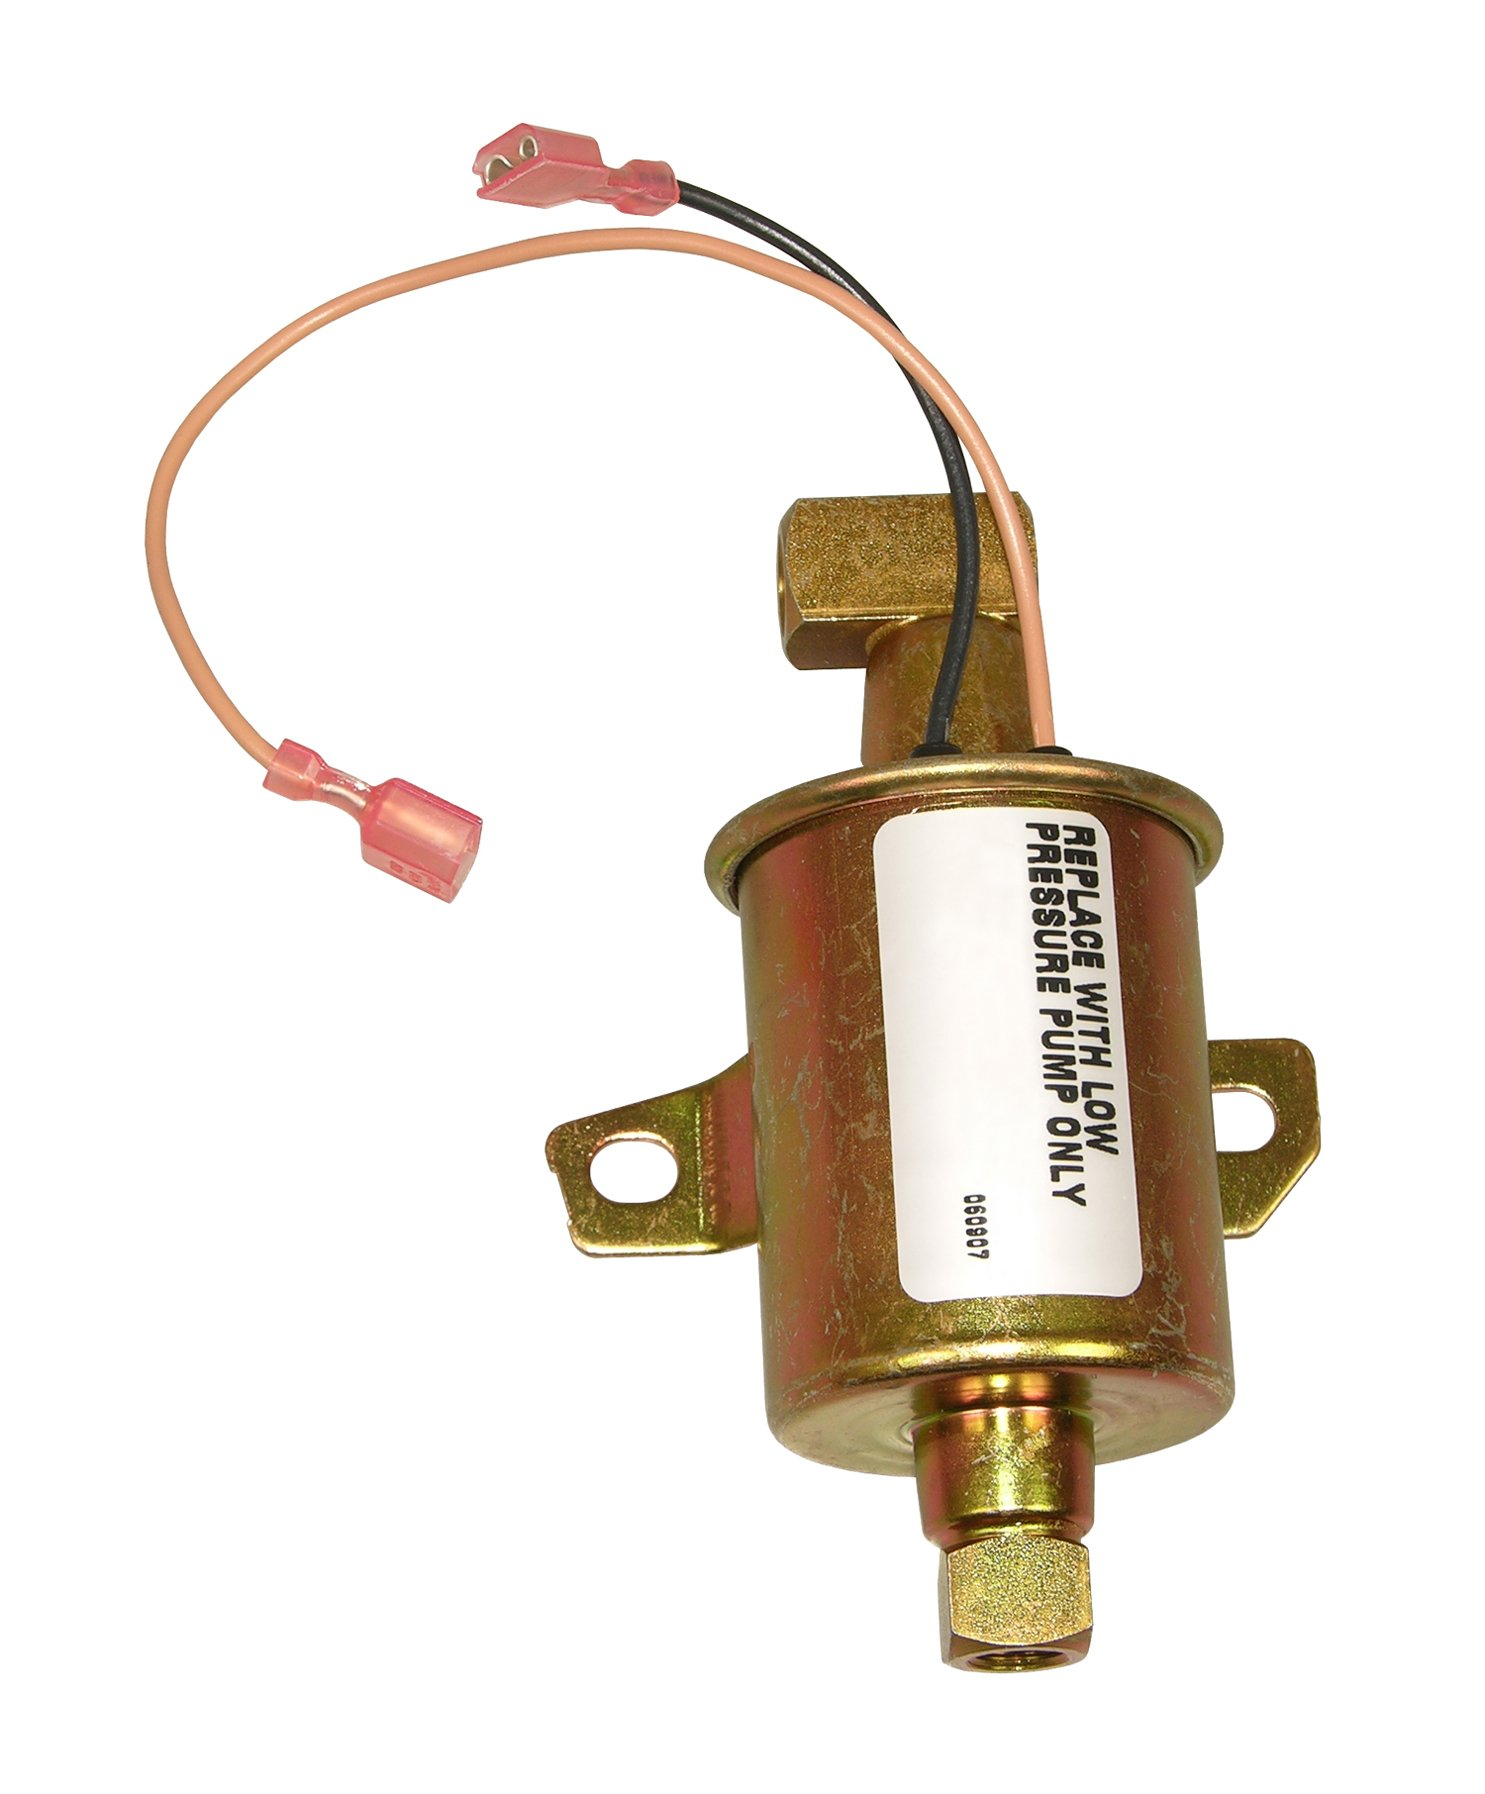 Airtex E11008 Electric Fuel Pump for Onan Generator Set